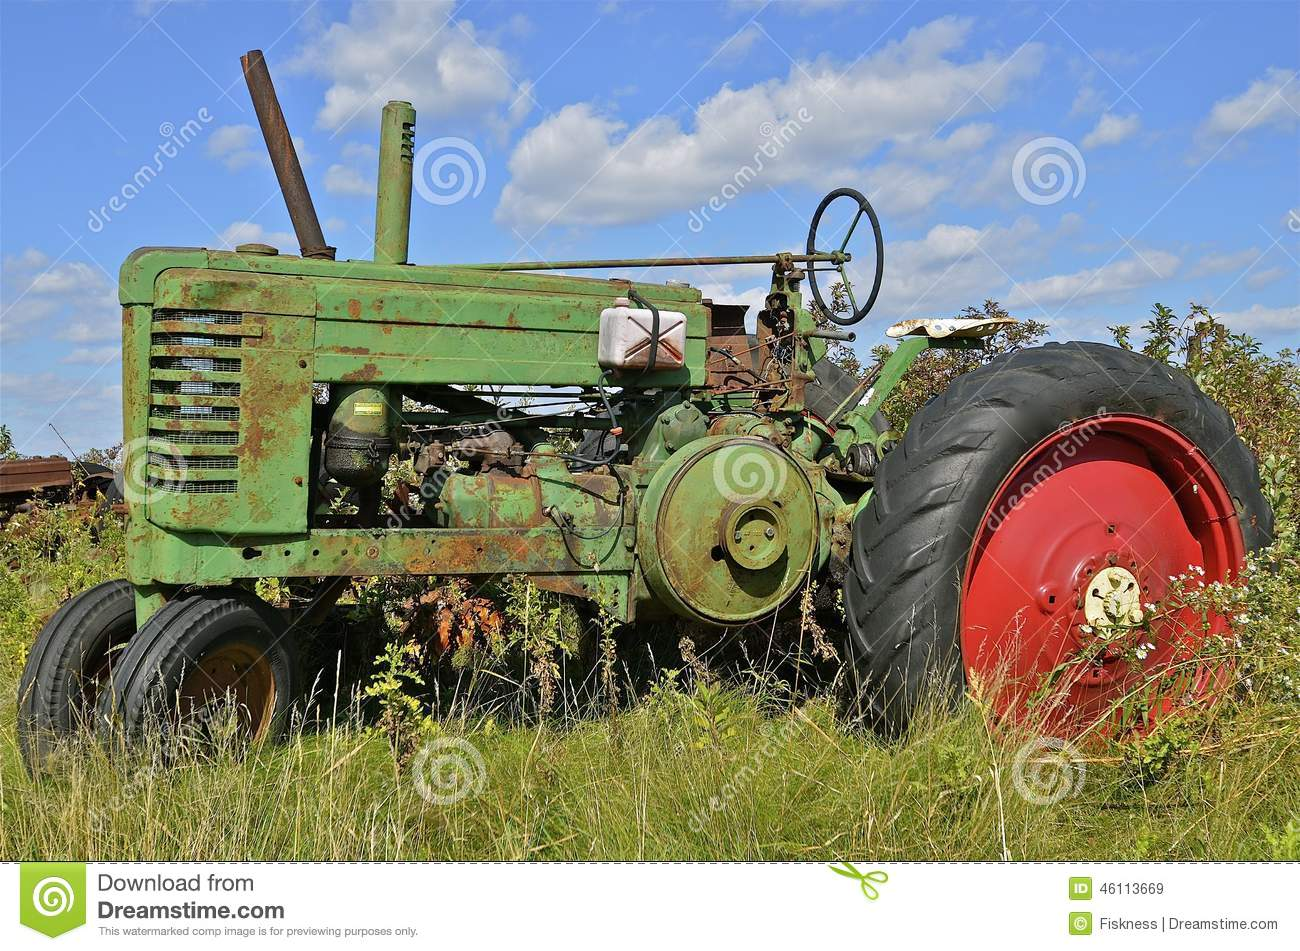 Up The Tractor Green Tractor With Bucket Cartoon : Big old green junkyard tractor stock photography